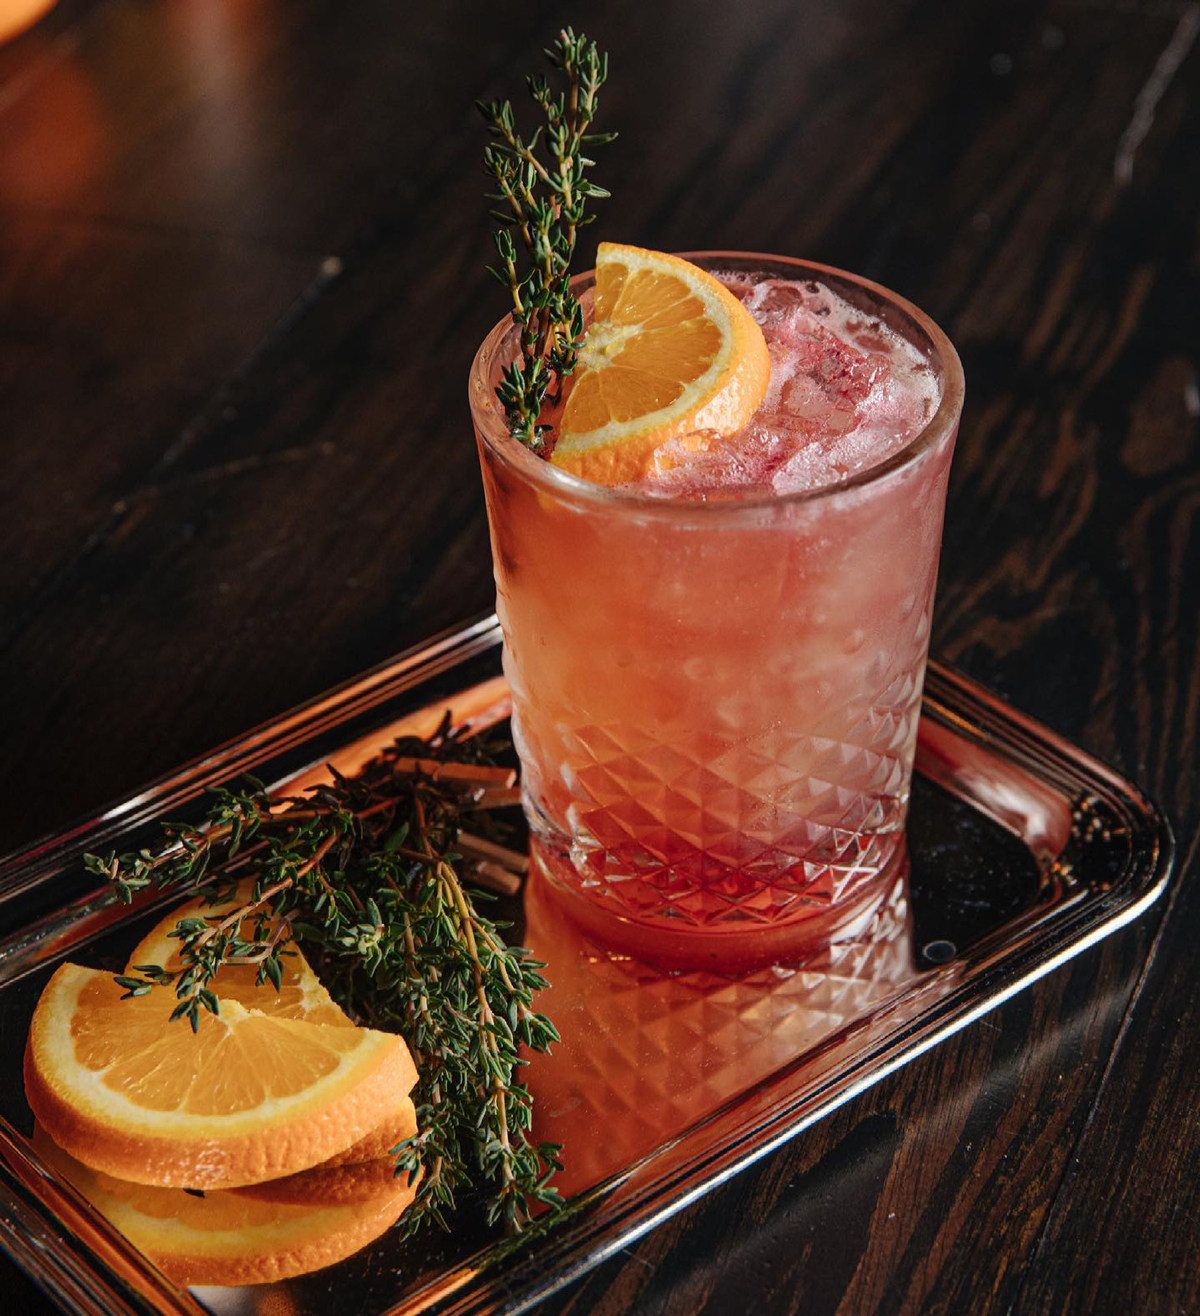 The Gramercy New Restaurant in Coral Gables cocktails